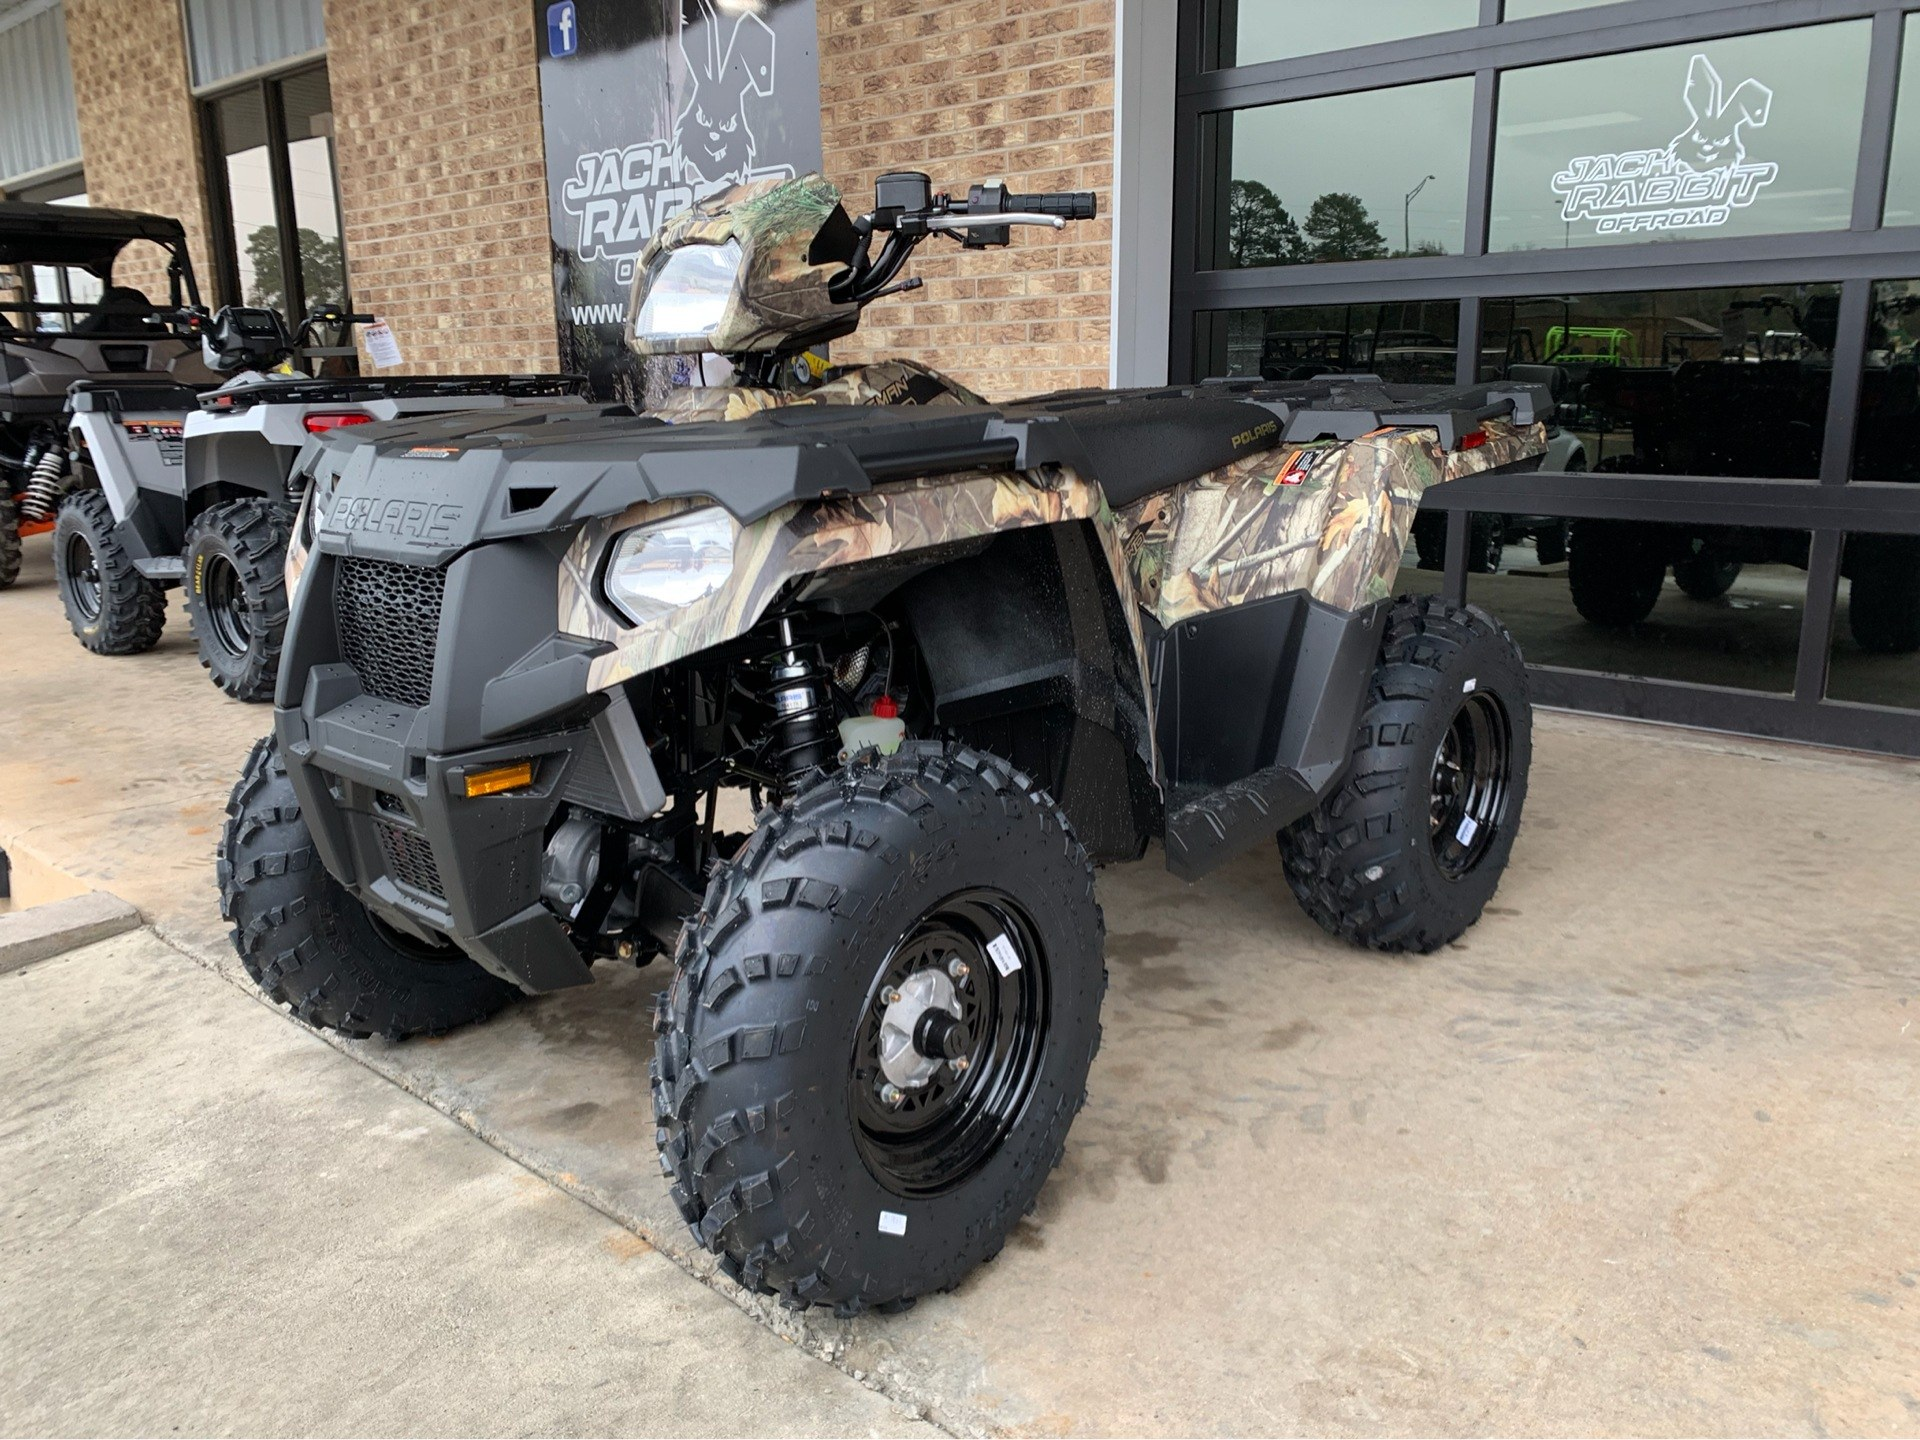 2019 Polaris Sportsman 570 Camo in Marshall, Texas - Photo 1